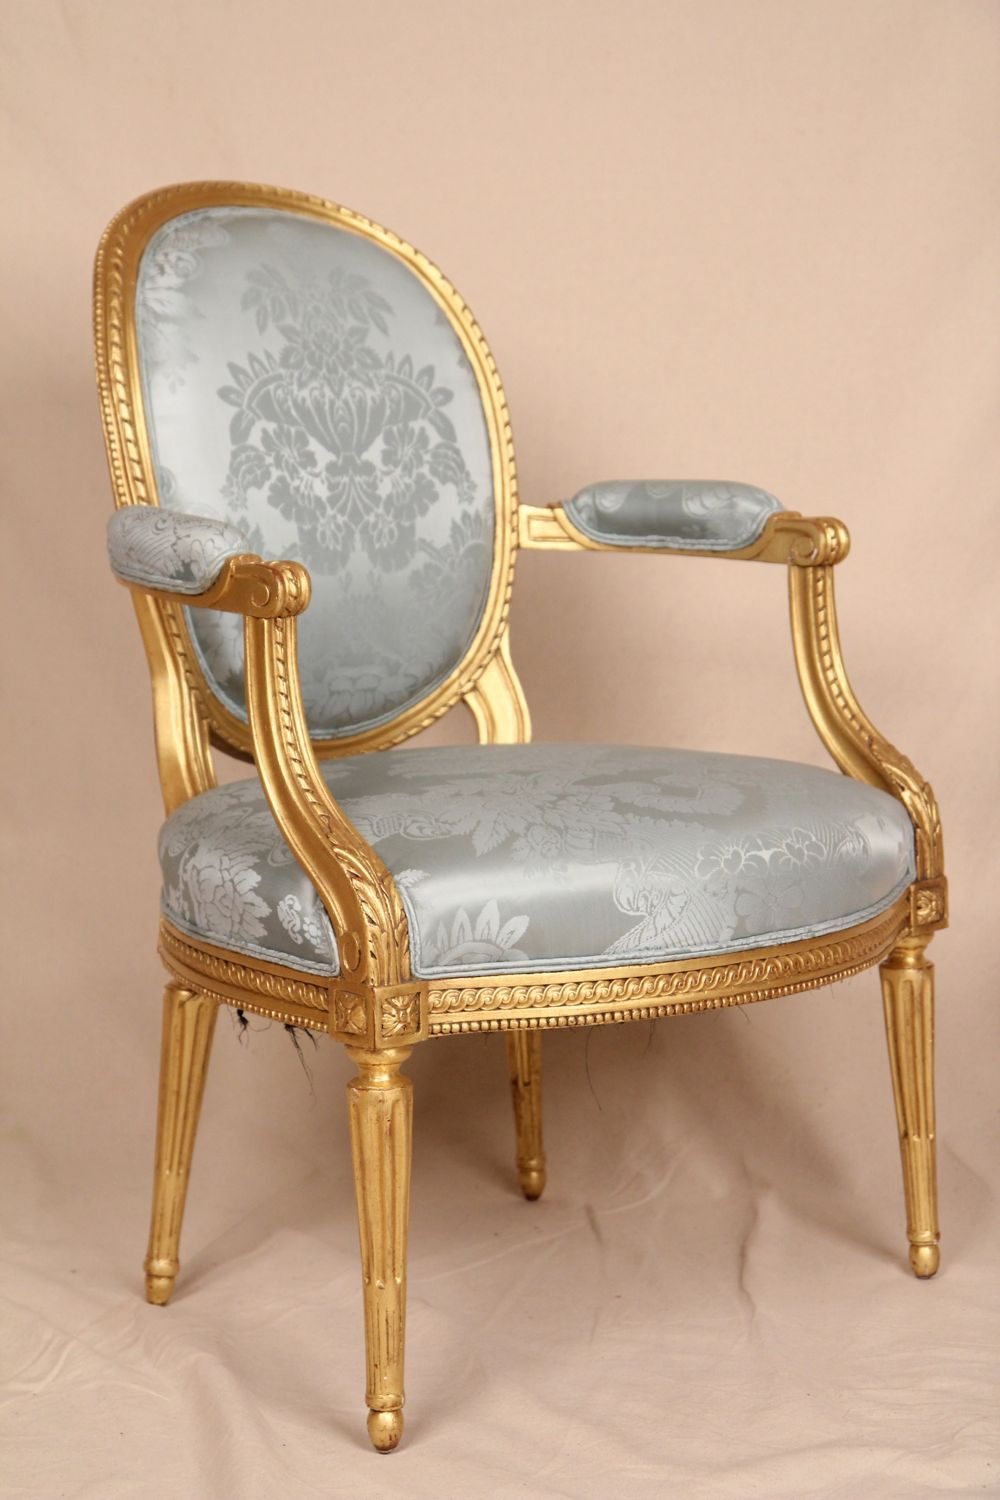 fine early 19th century gilded french louis xvi antique fauteuil arm chair for sale antiques com classifieds